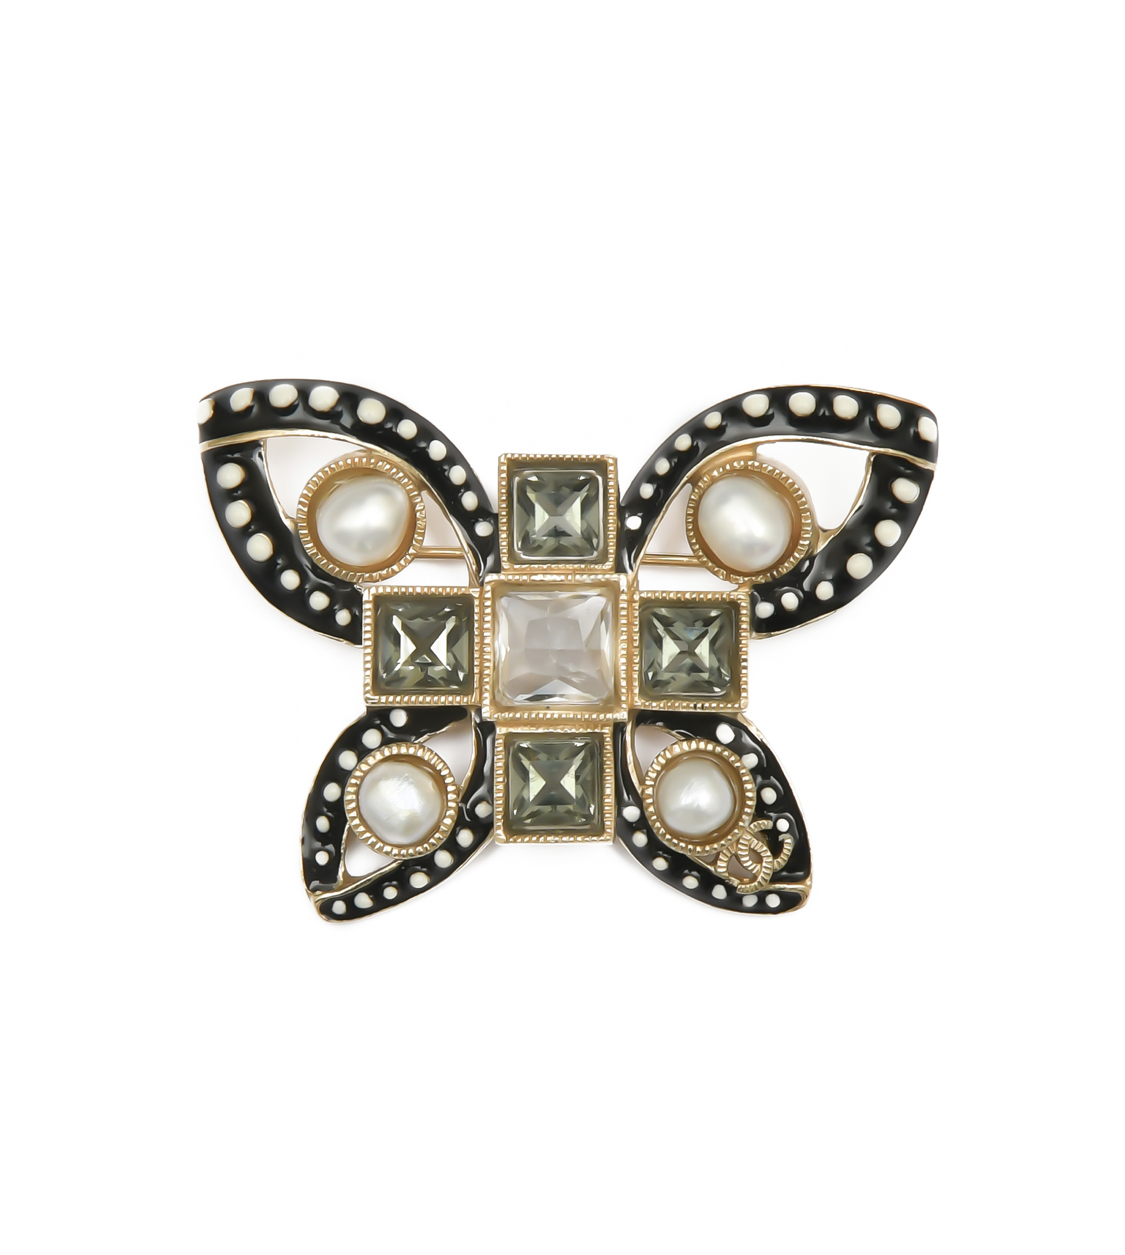 2015 Chanel butterfly animalistic brooch, collection spring